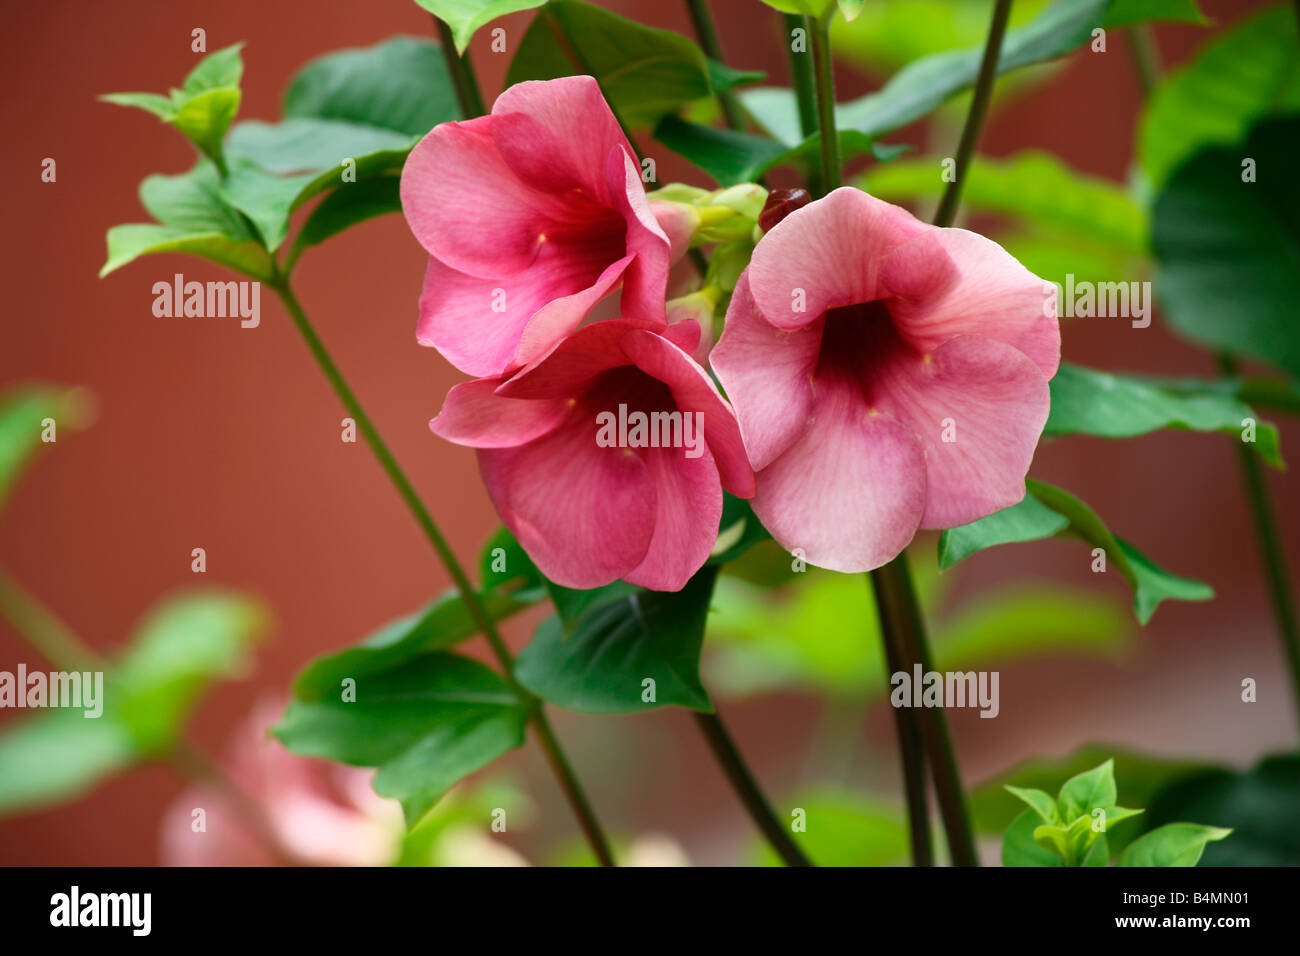 Allamanda High Resolution Stock Photography And Images Alamy